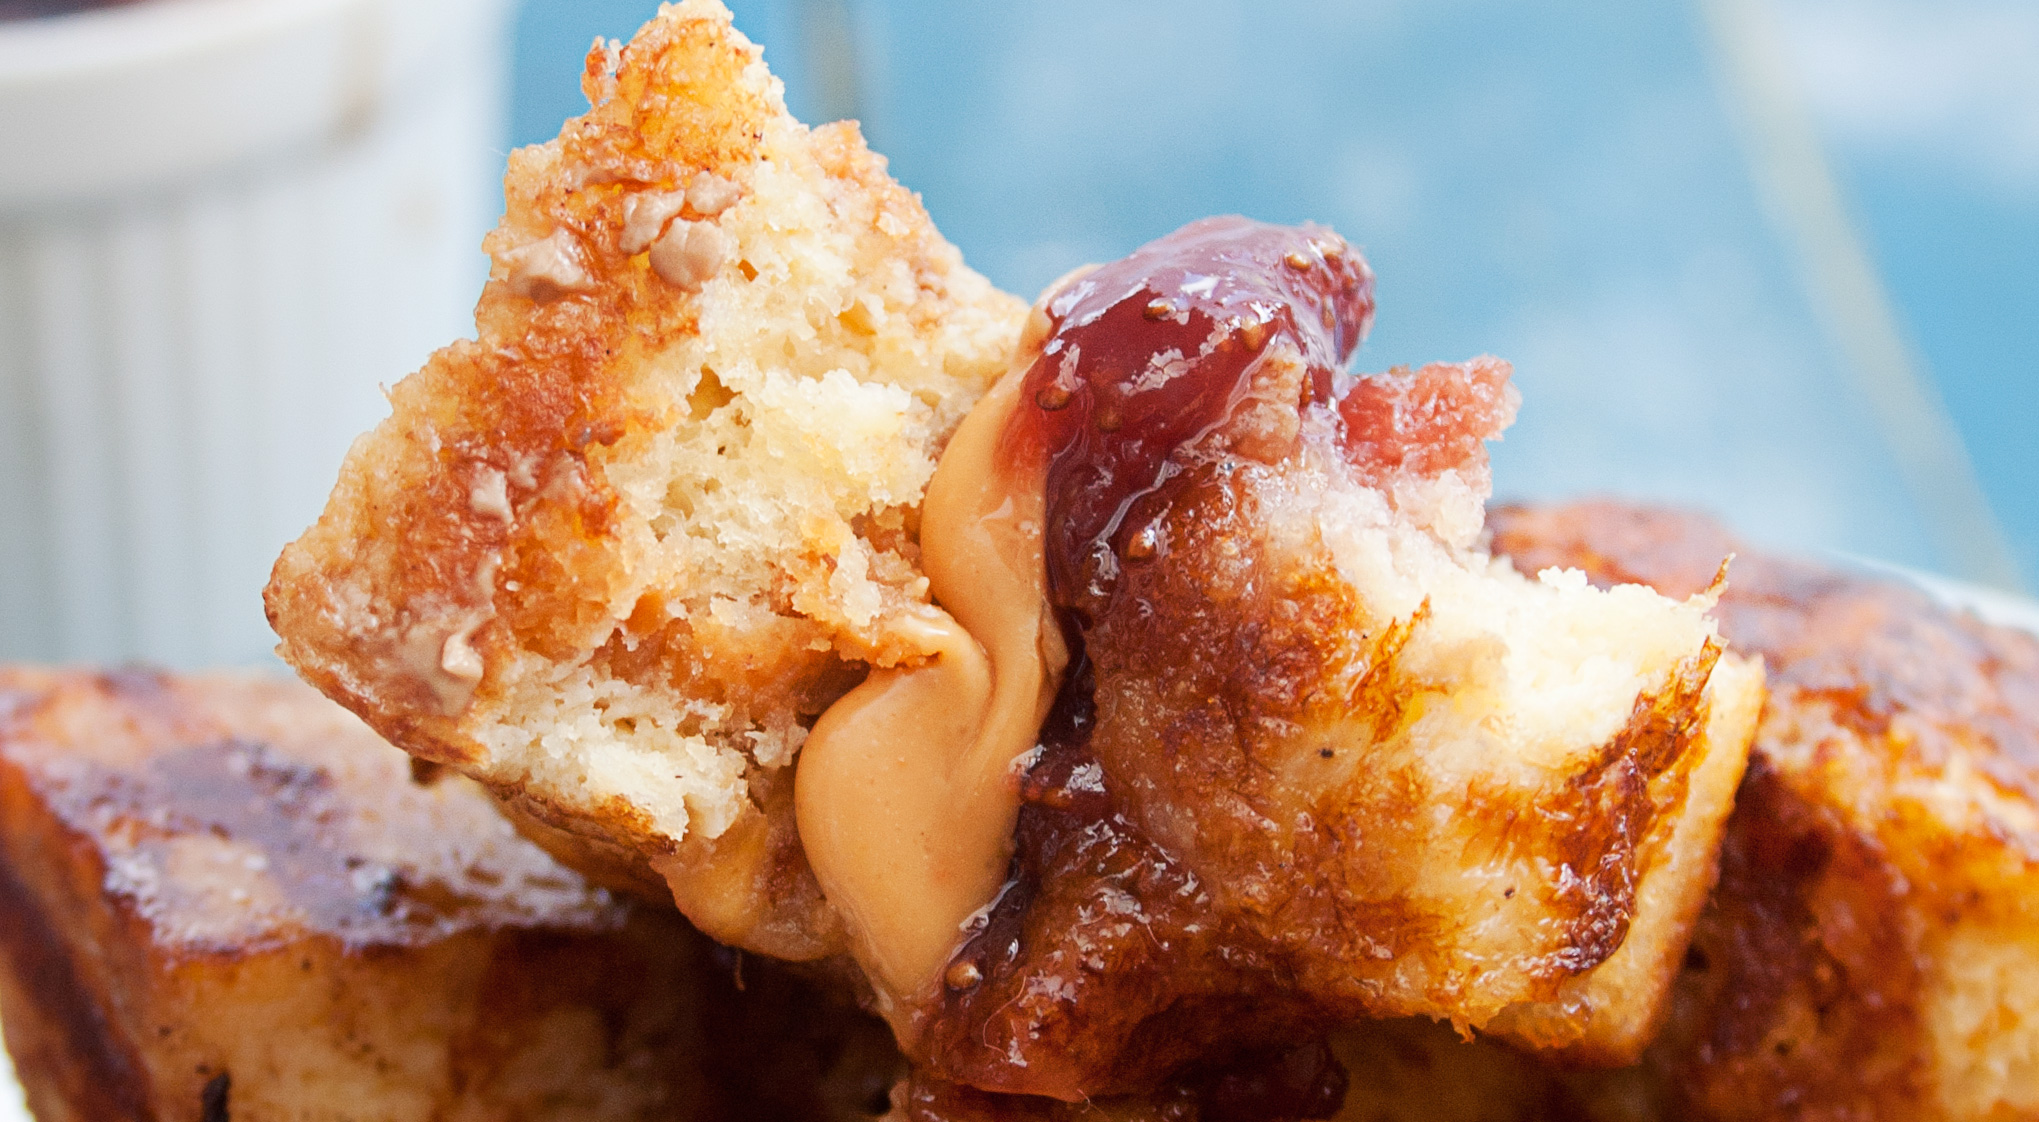 Peanut Butter & Jelly Stuffed French Toast Bites with Balsamic Dipping Sauce